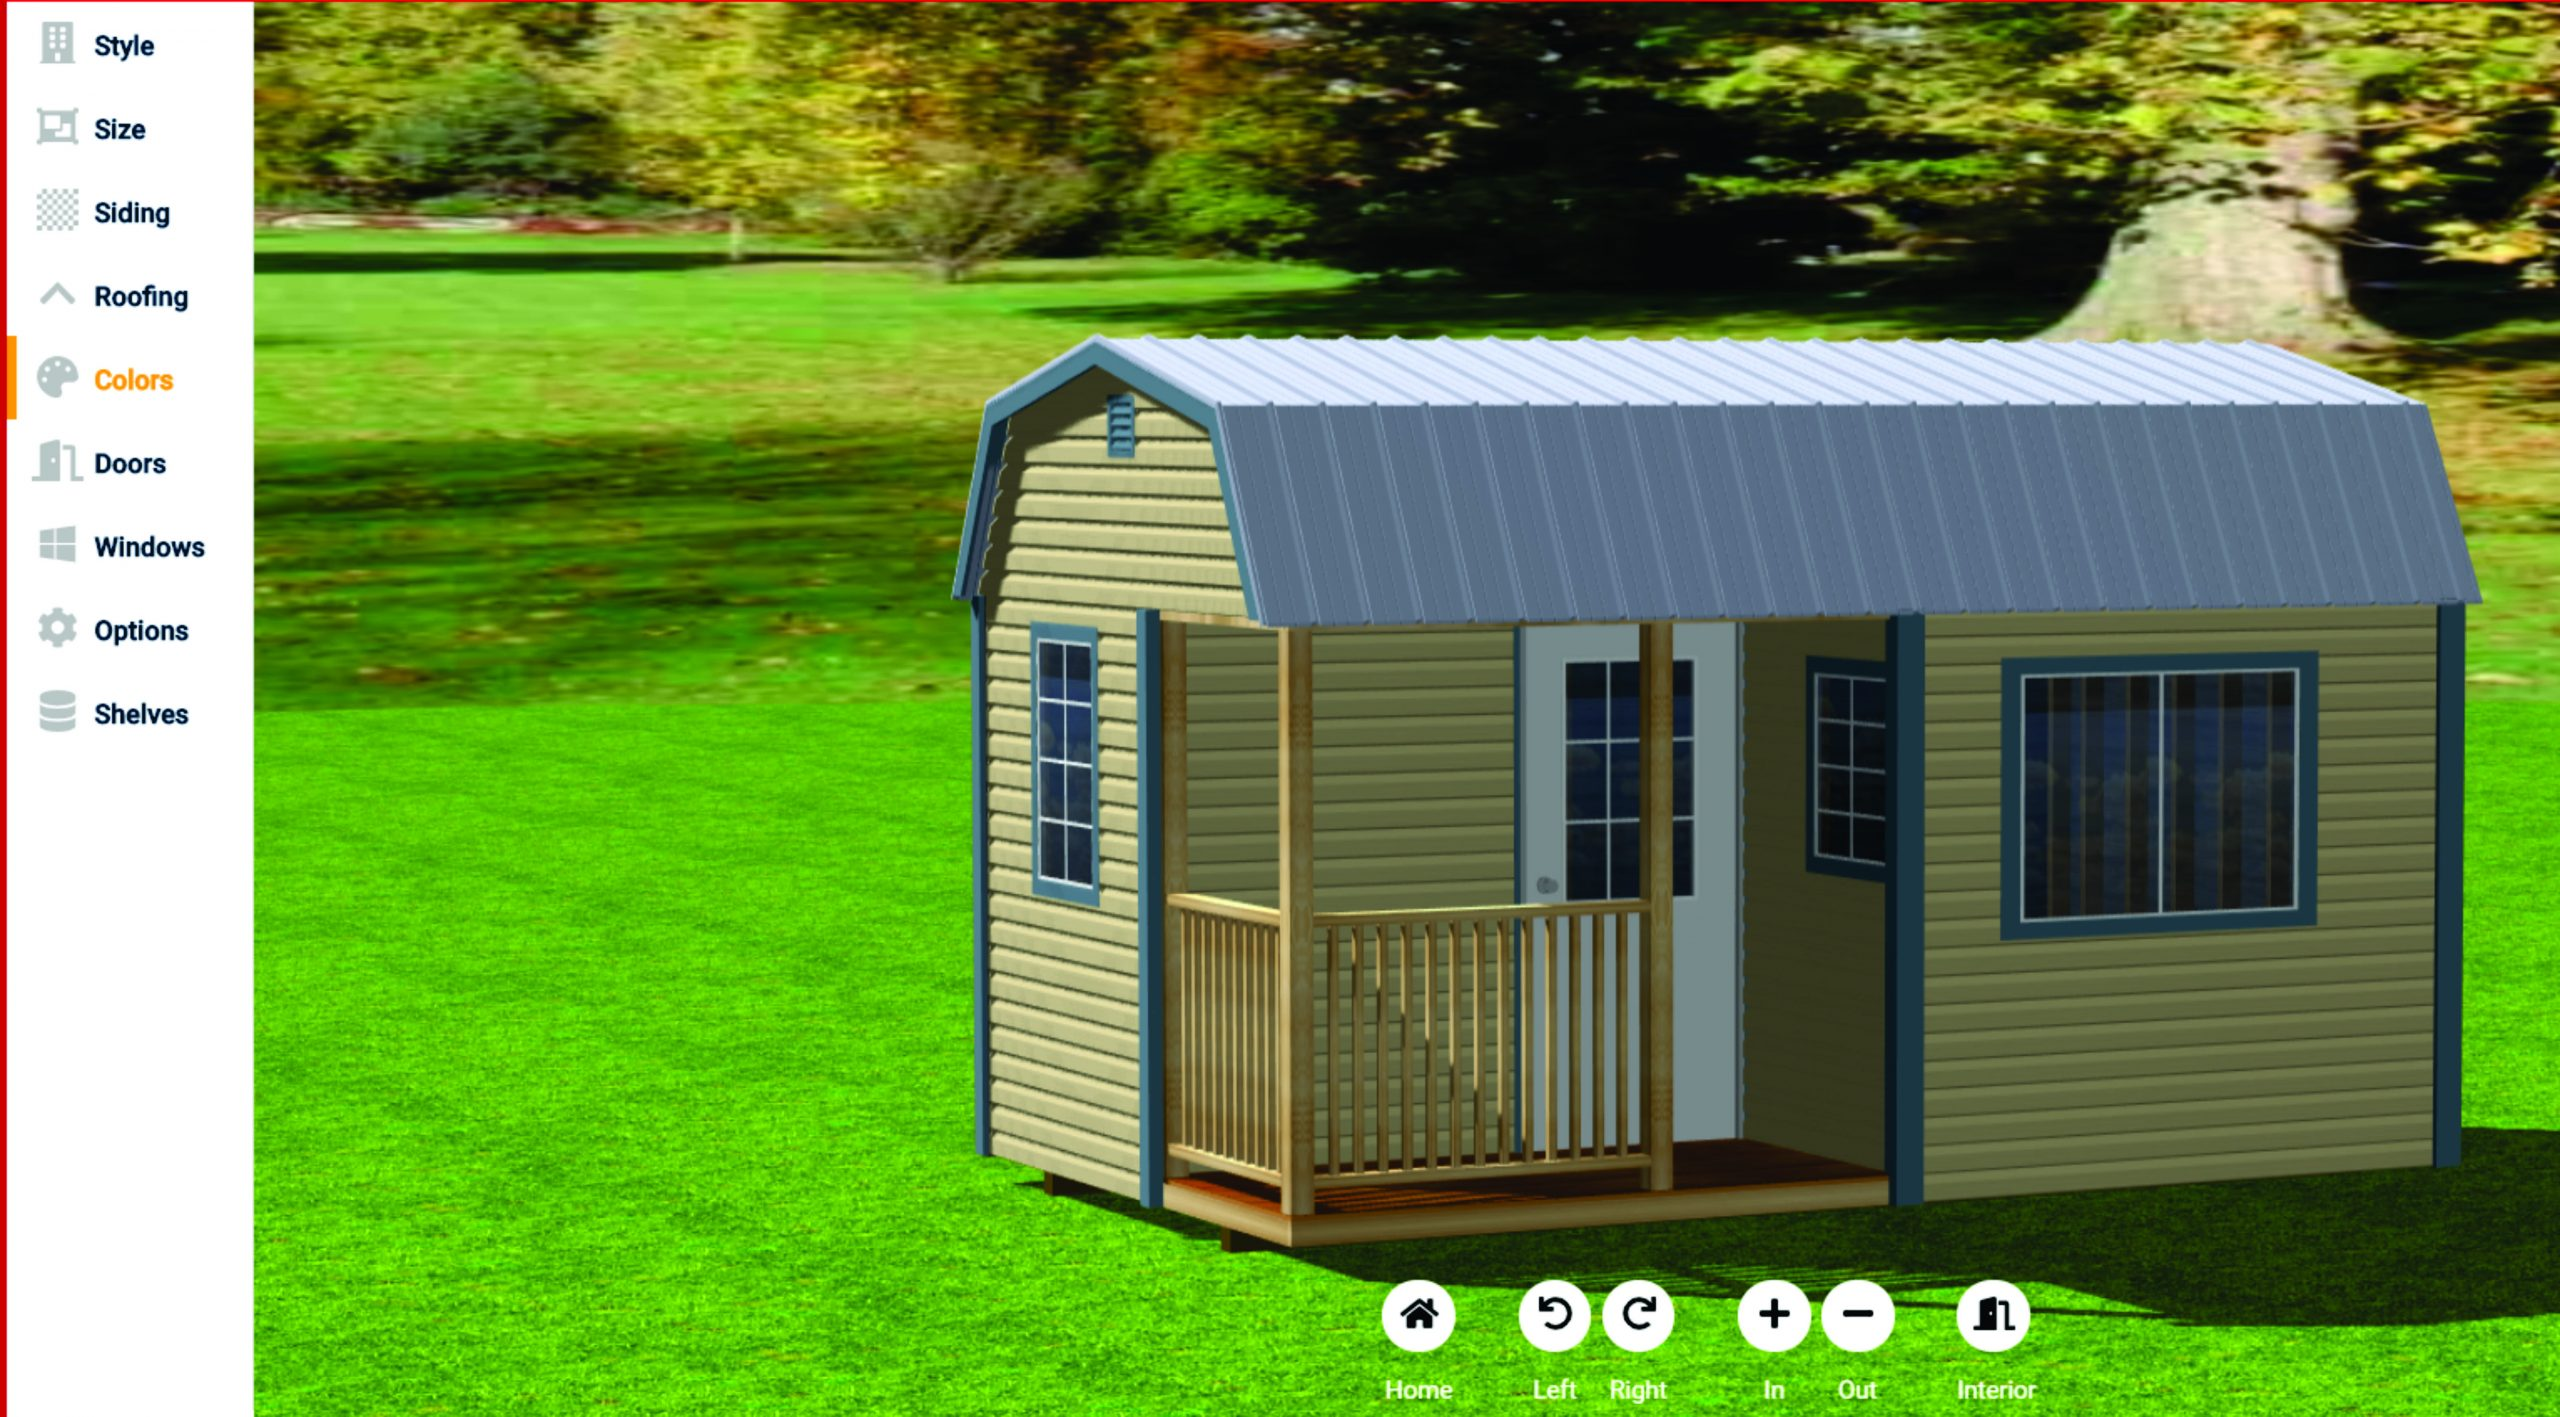 Probuilt Structures Sleel Building Storage Building Sheds She Sheds Man Cave Logo sheds for sale build your shed online